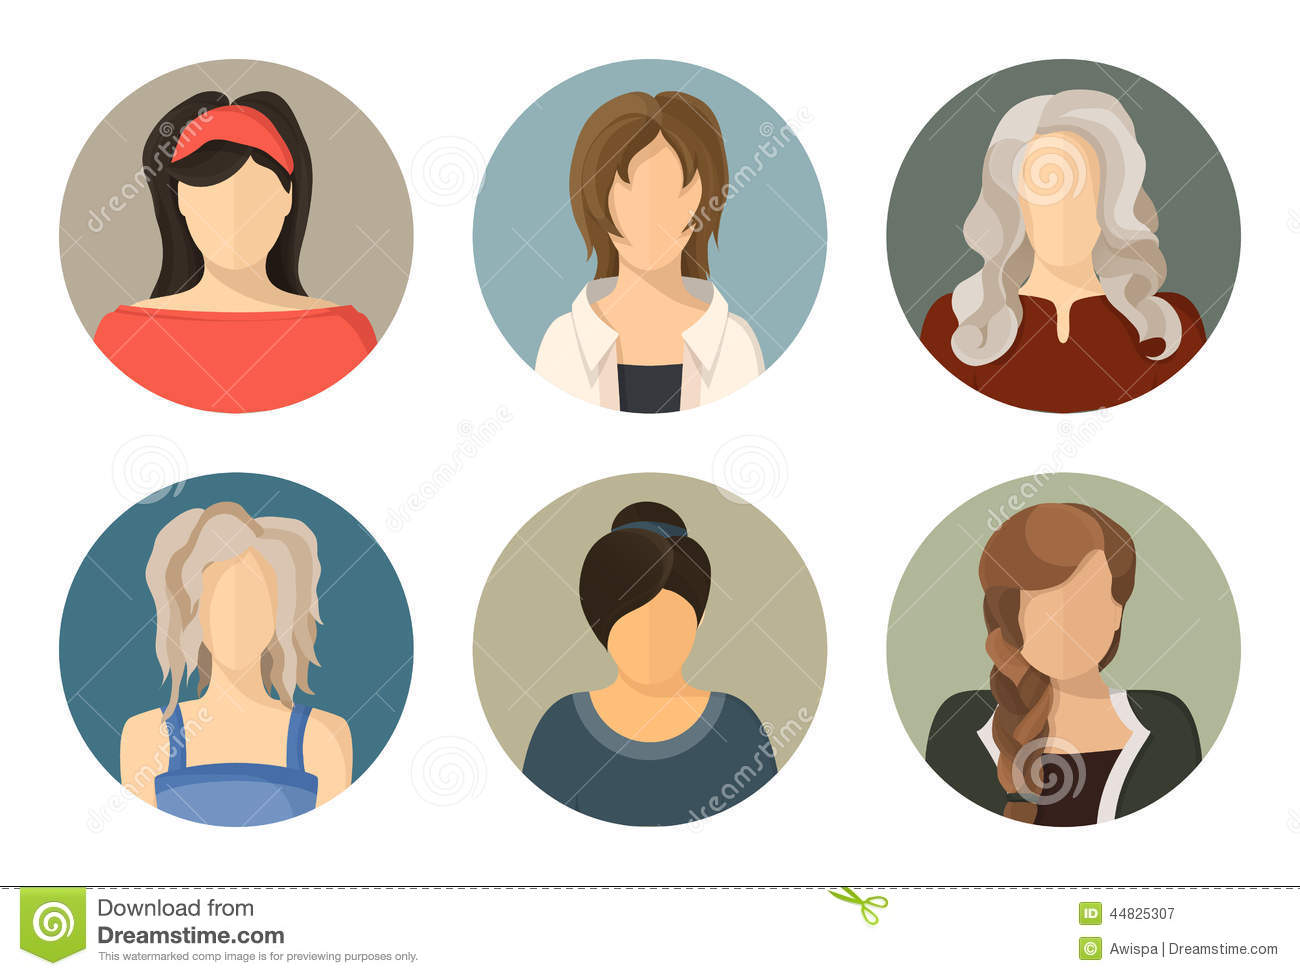 Women Circle Avatar Icon Set Stock Illustration - Image ...